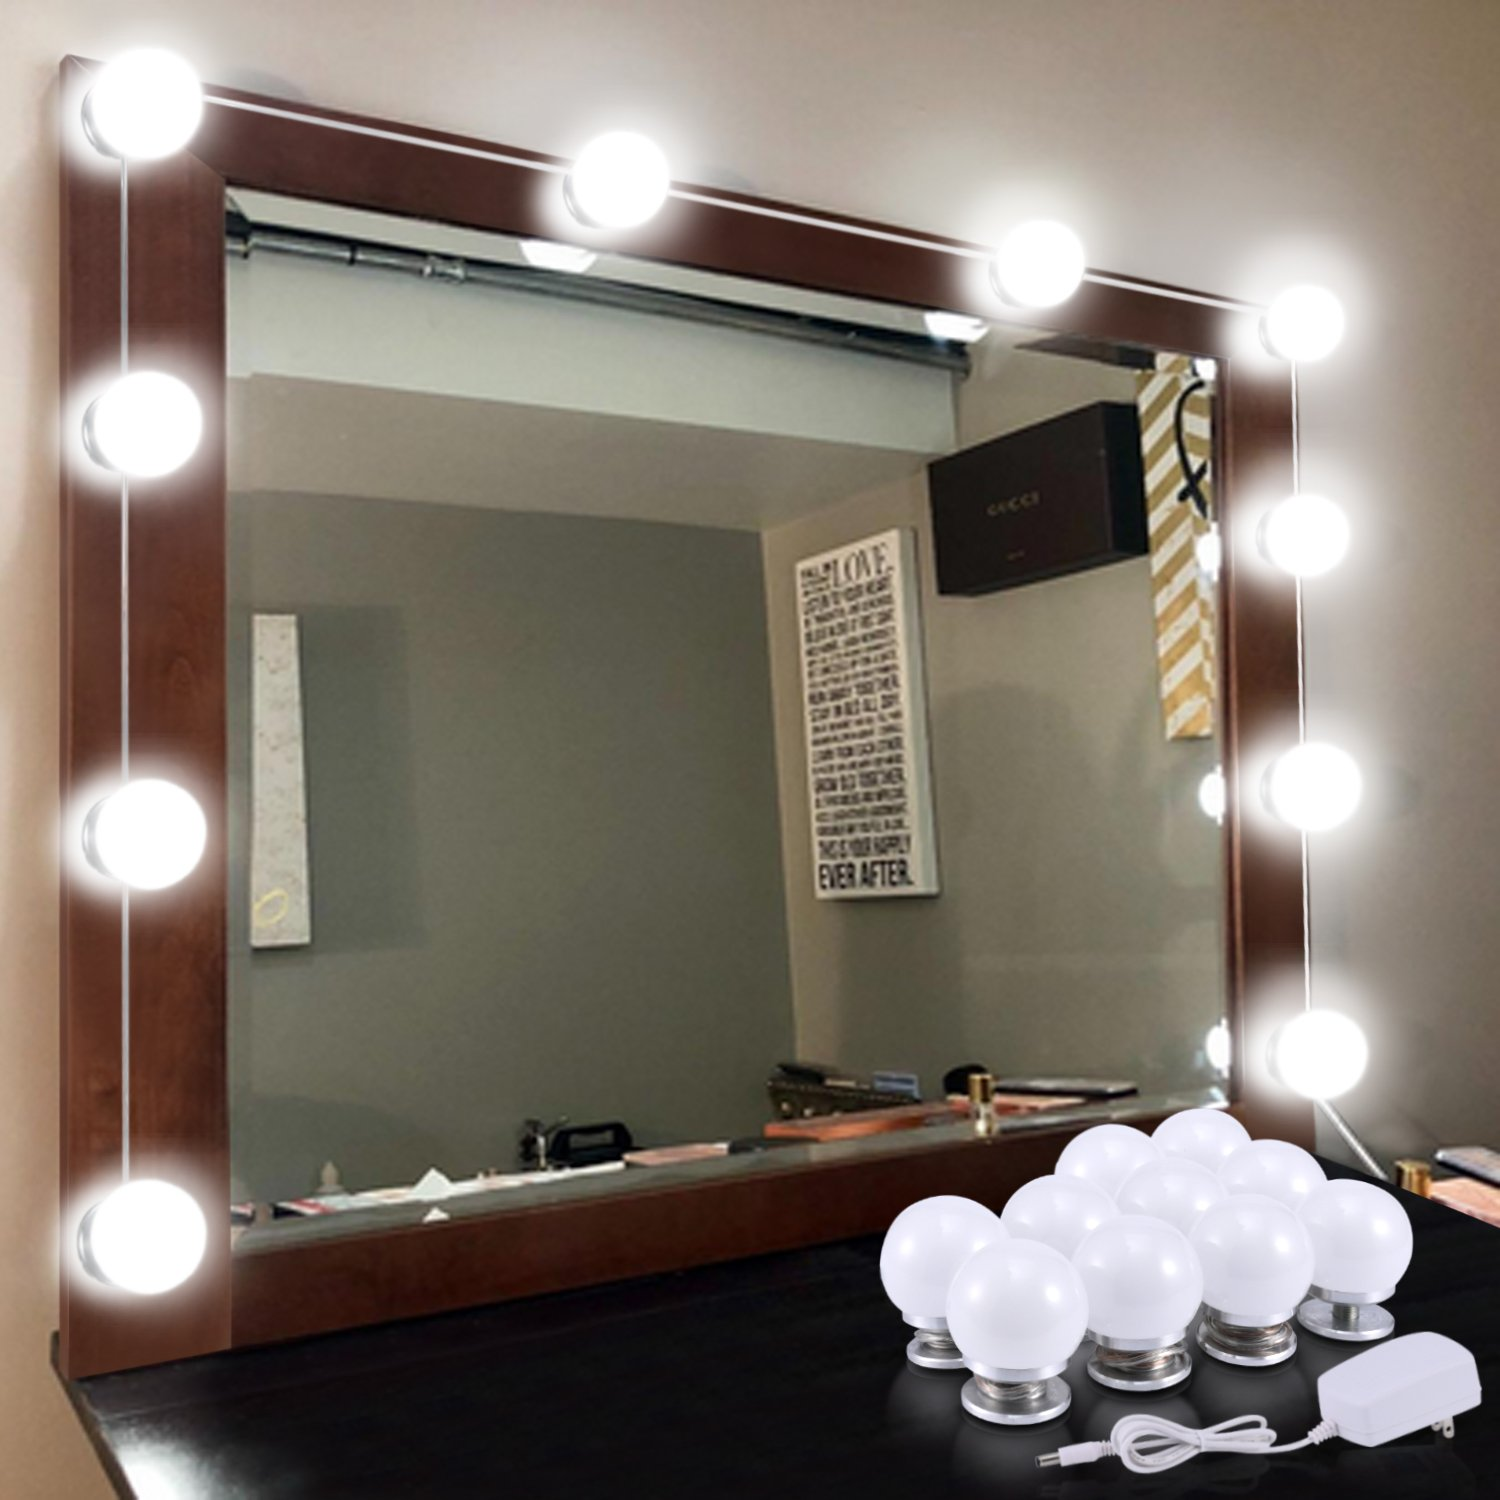 Hollywood Vanity Mirror Light Kits, Kohree Dimmable Led Makeup Mirror Light Bulbs (10 Bulbs),Vanity Lights for Ma